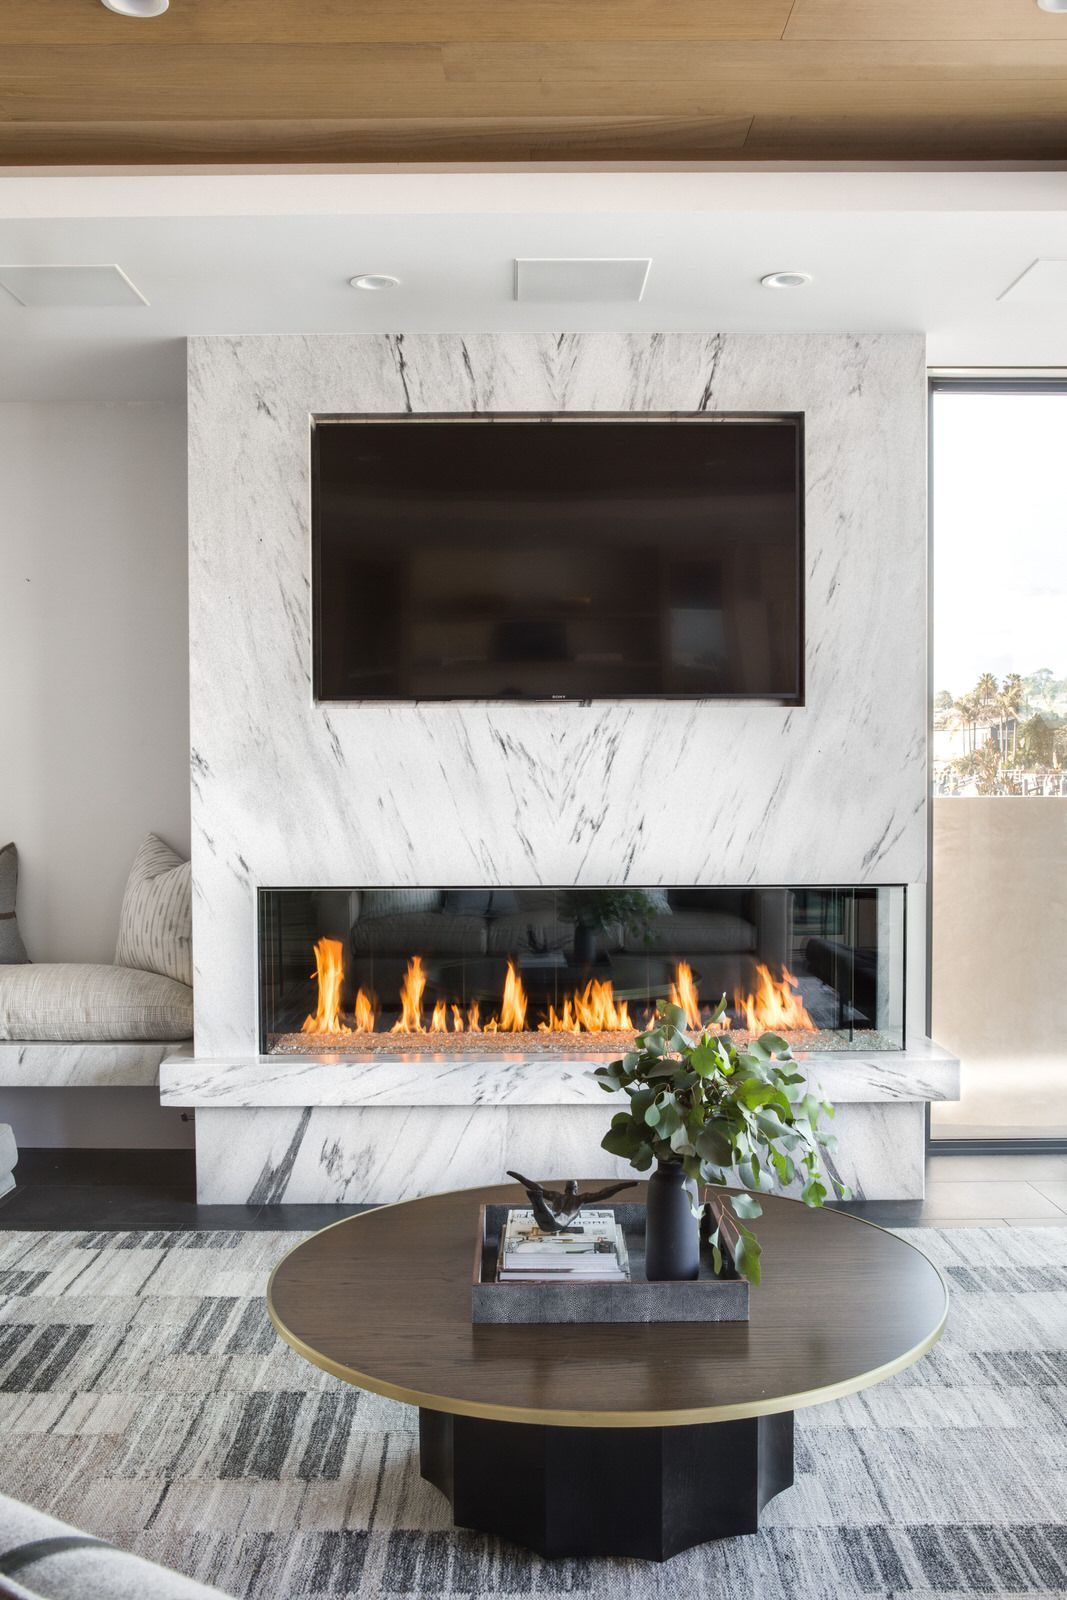 marble fireplace tv stand on all marble fireplace surround with inset tv so chic and sophisticated design by chad mellon firep minimalist fireplace contemporary fireplace home fireplace pinterest